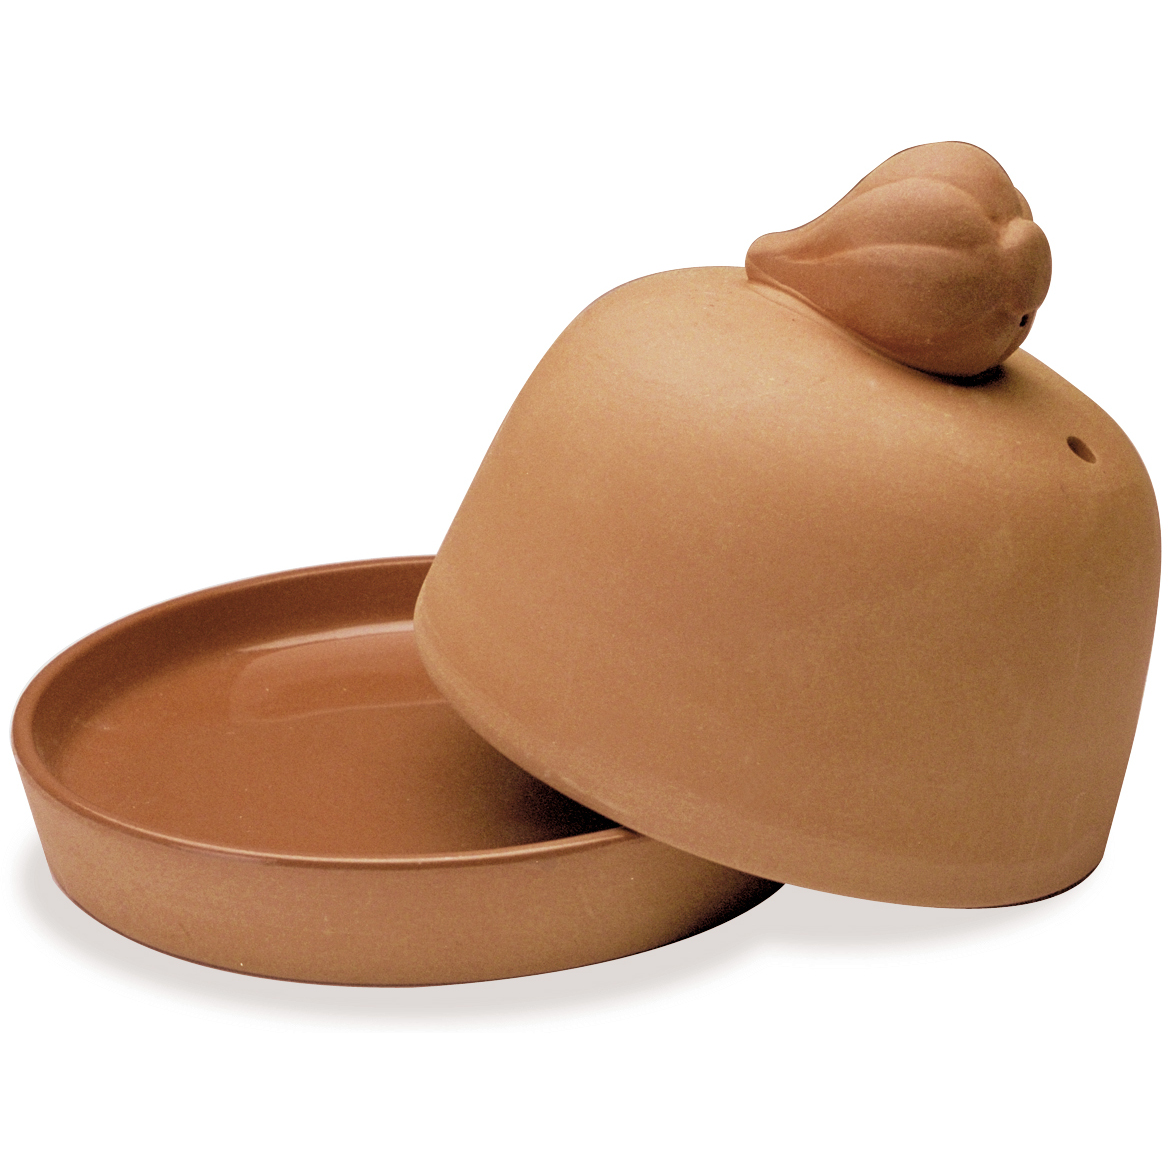 Progressive International Terra Cotta Garlic Roaster